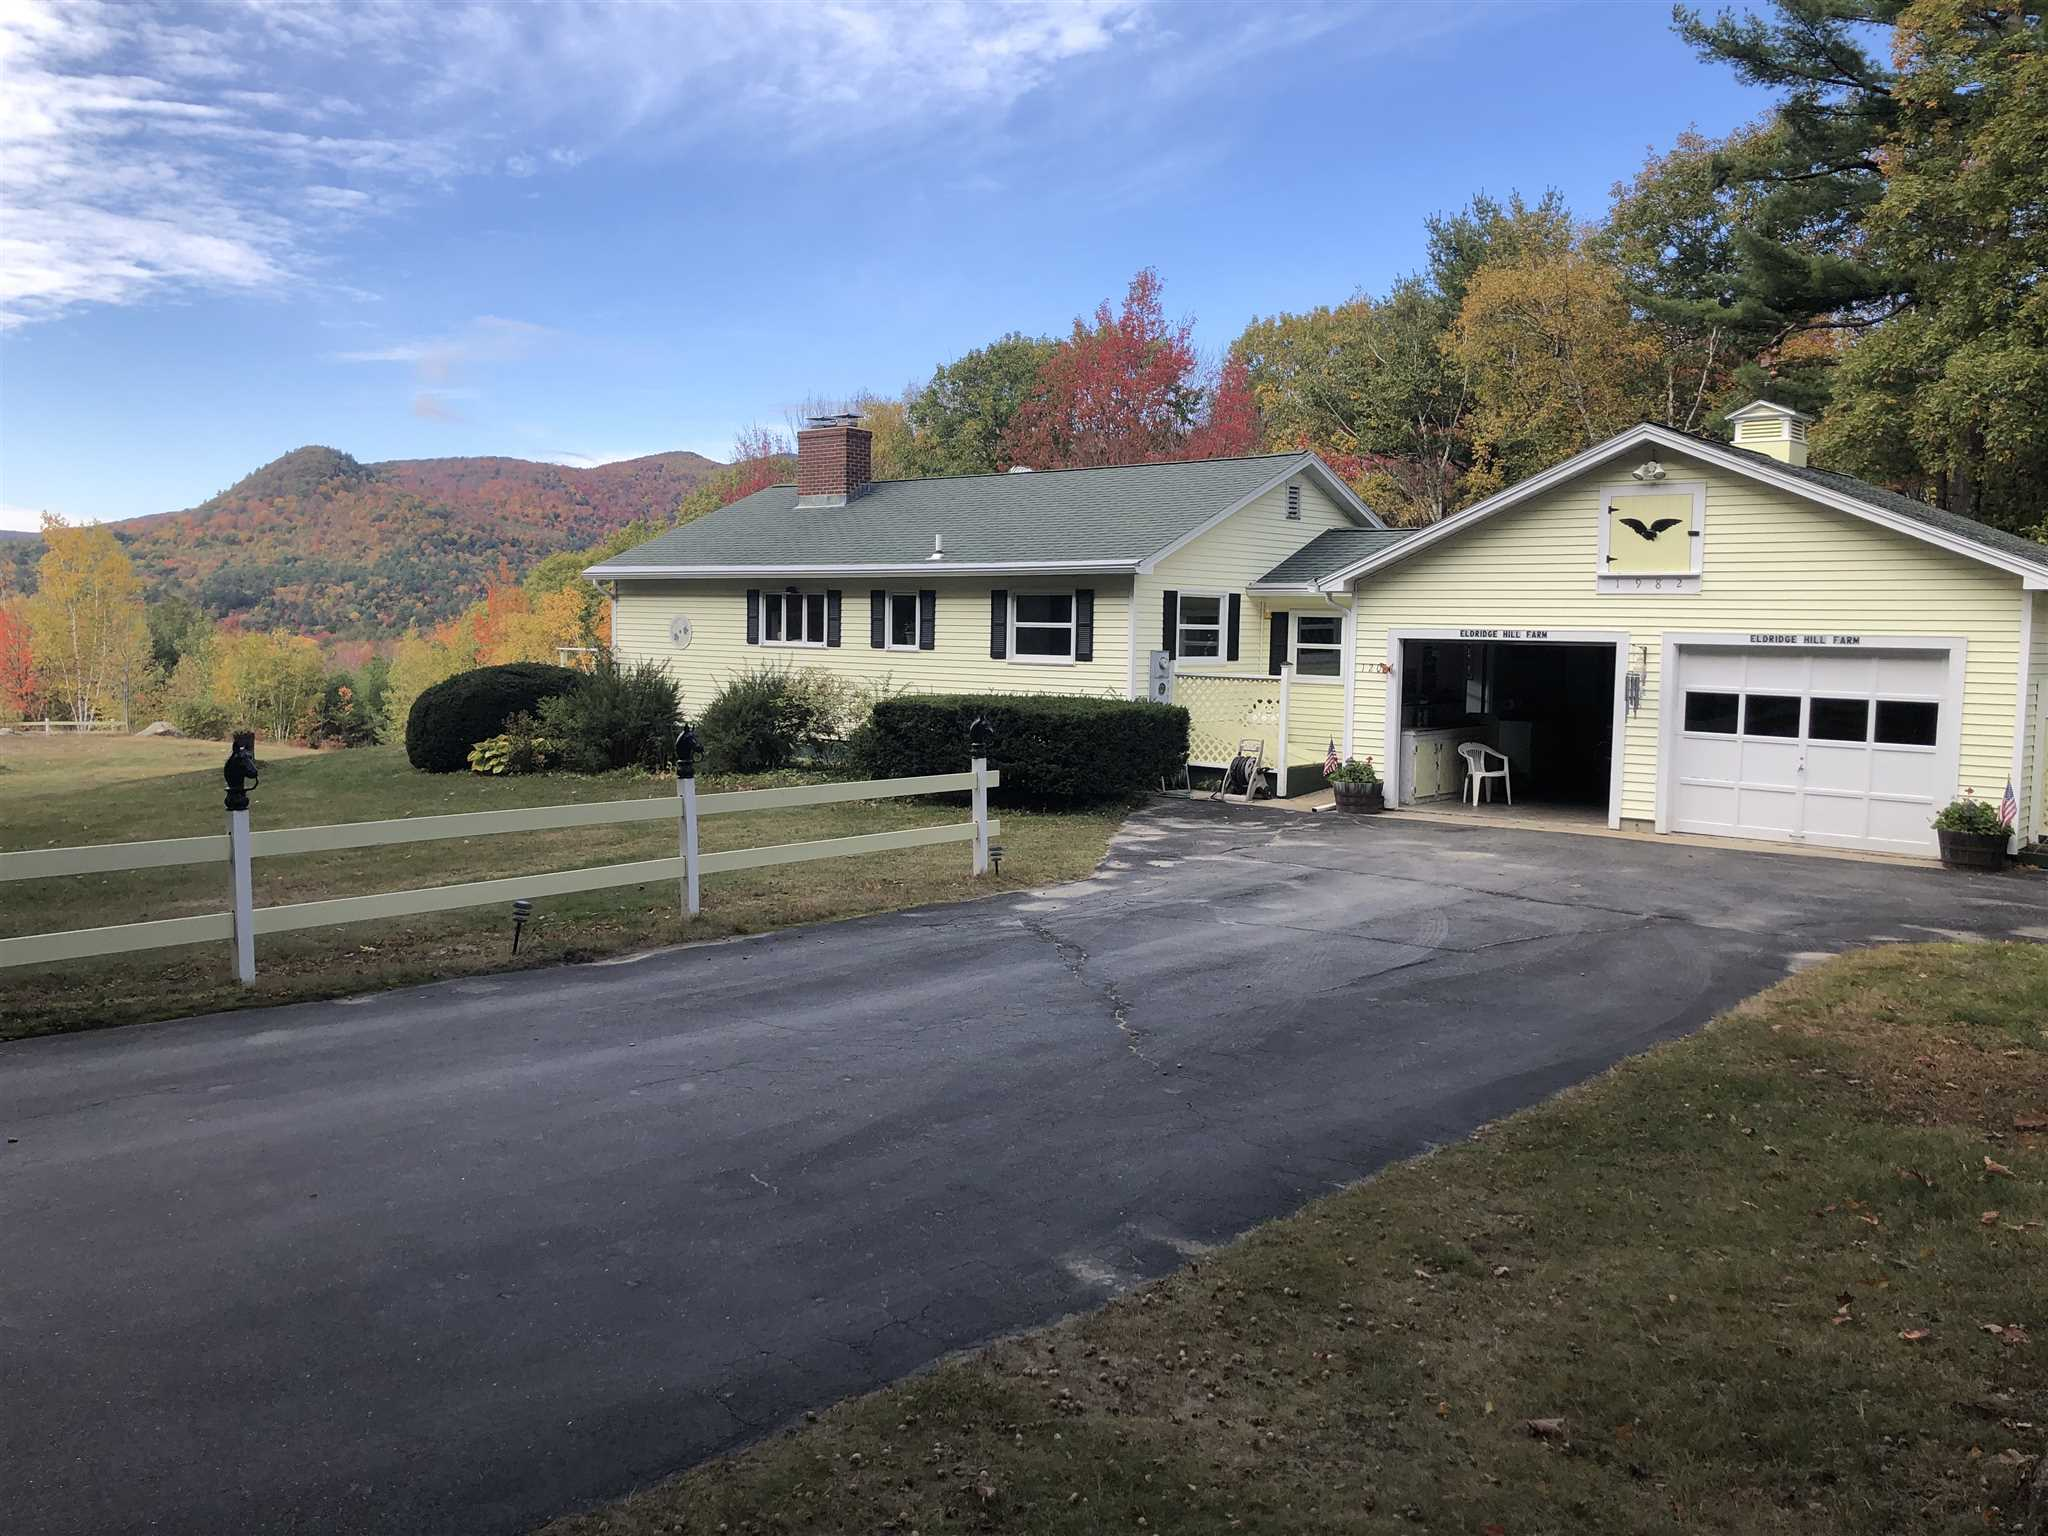 VILLAGE OF CENTER OSSIPEE IN TOWN OF OSSIPEE NH Homes for sale